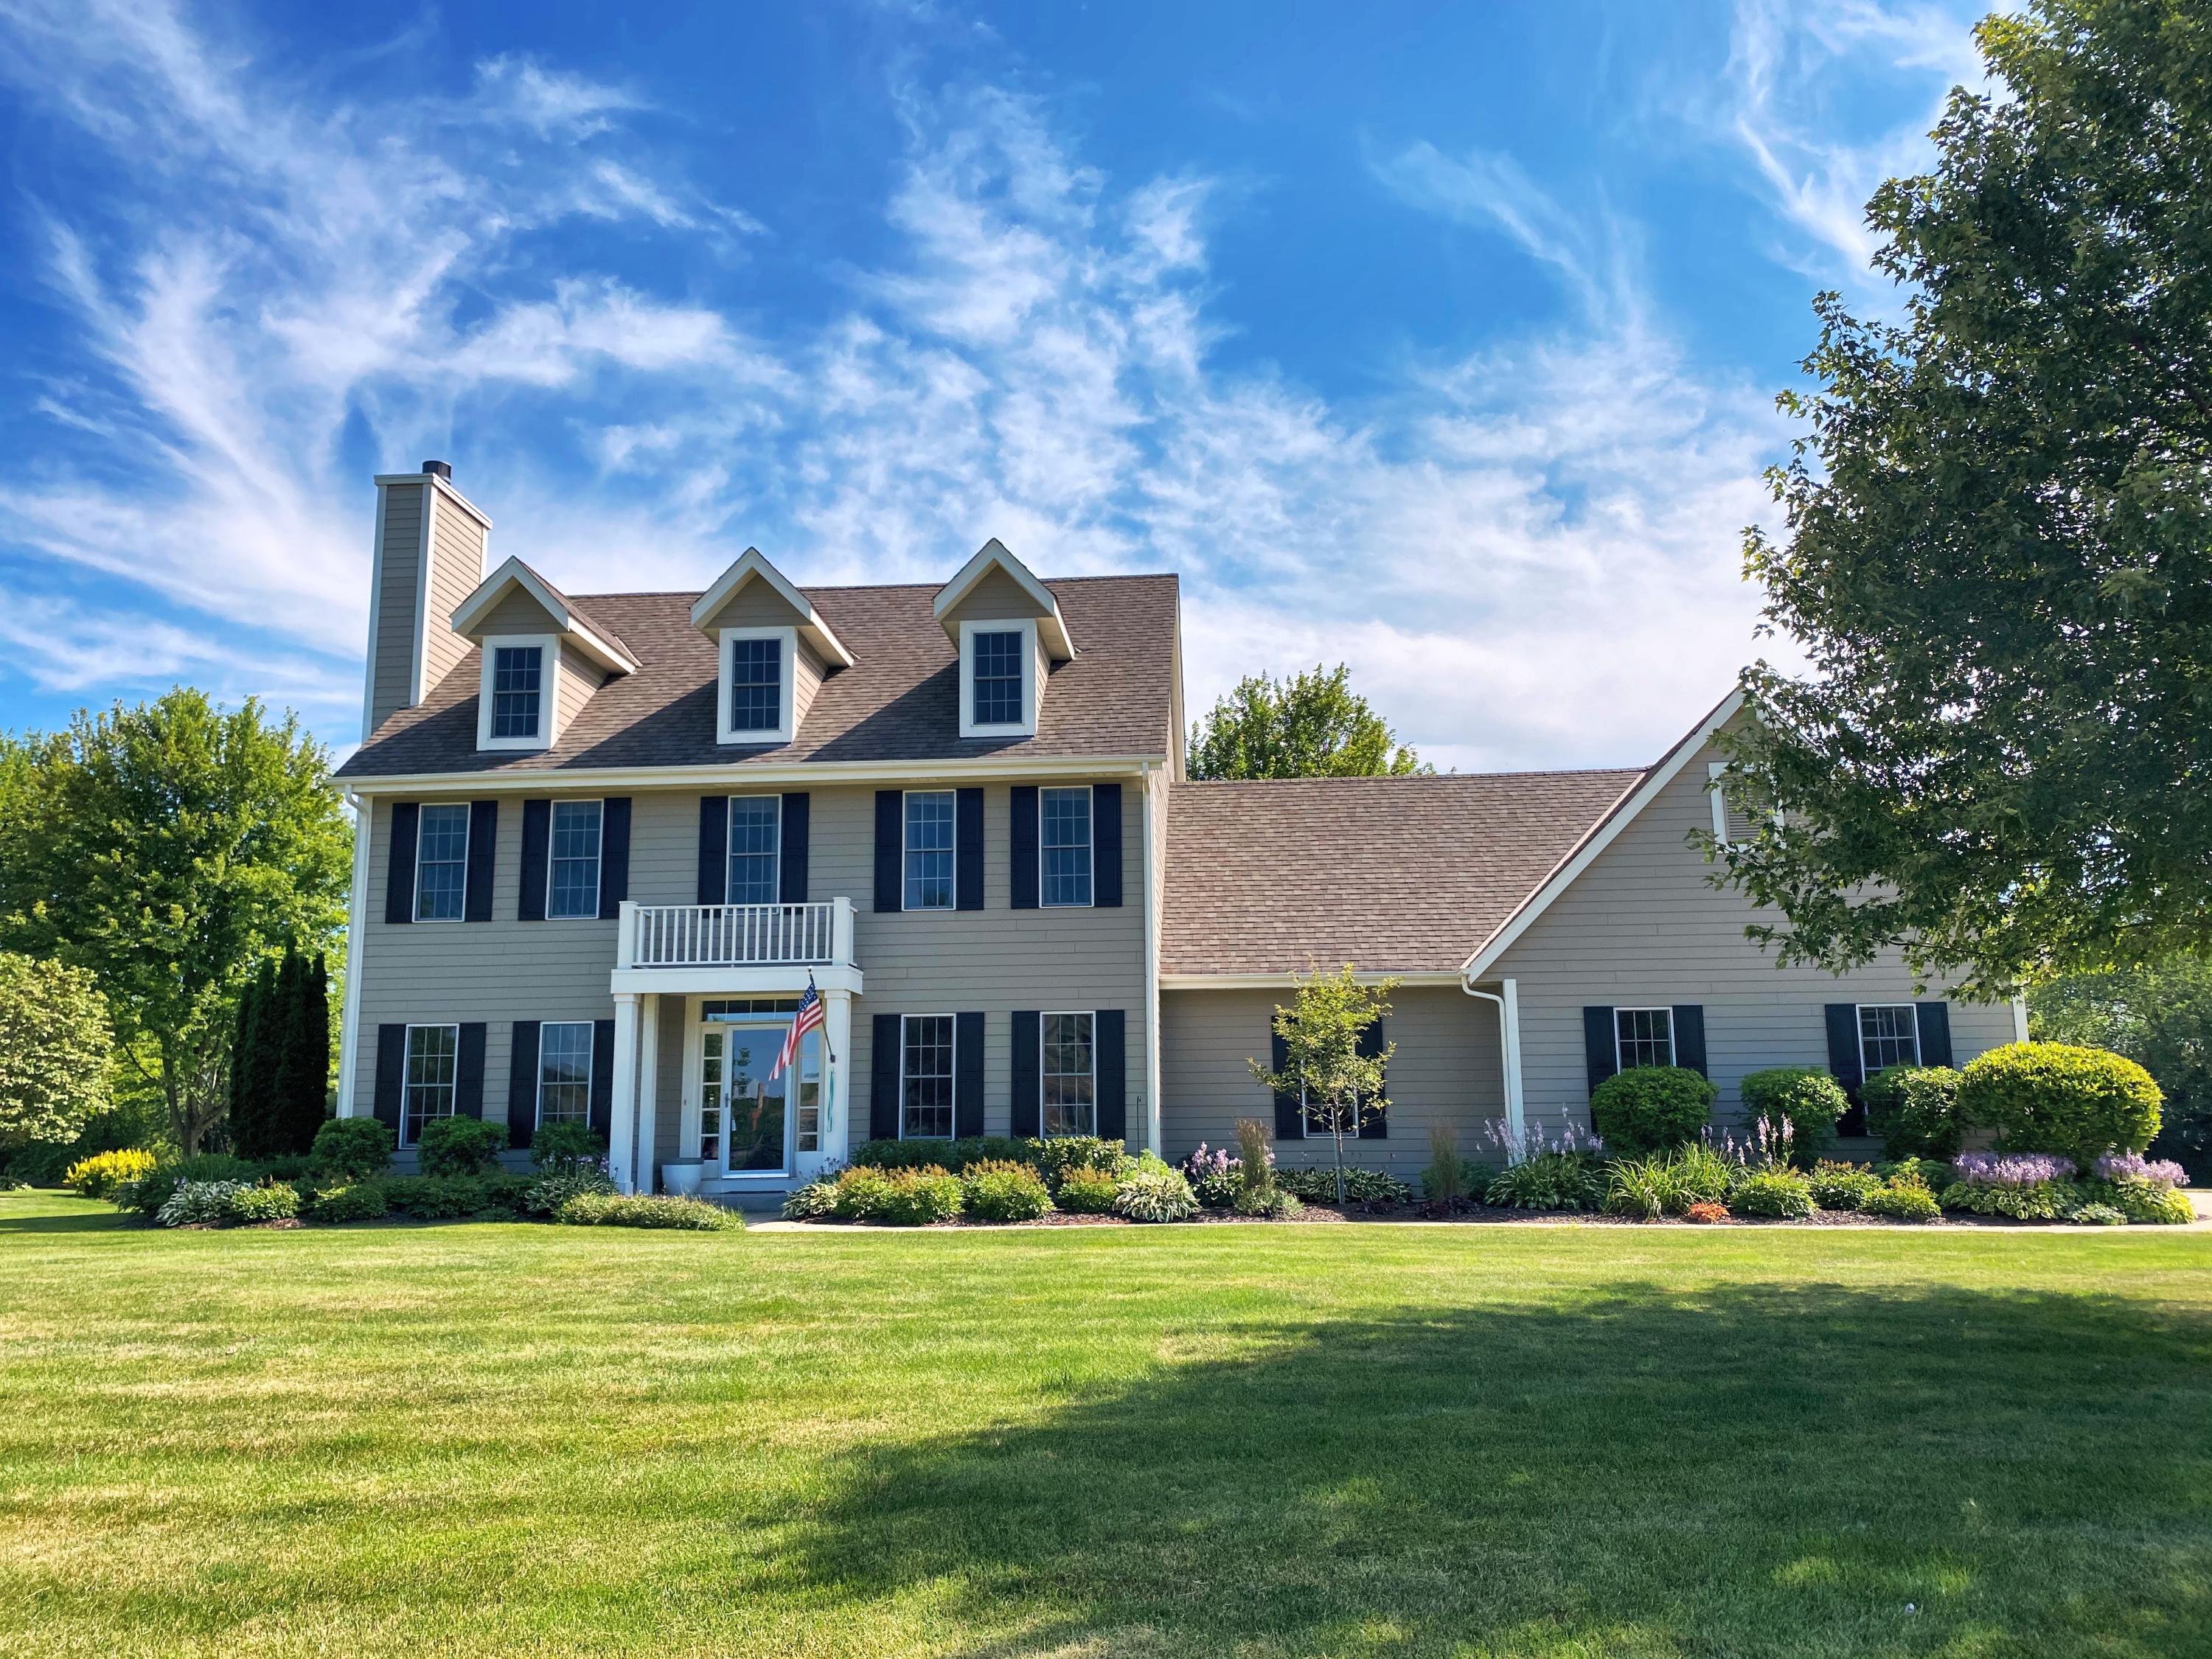 N74W28721 Zimmers Xing, Hartland, Wisconsin 53029, 4 Bedrooms Bedrooms, 11 Rooms Rooms,3 BathroomsBathrooms,Single-Family,For Sale,Zimmers Xing,1701289